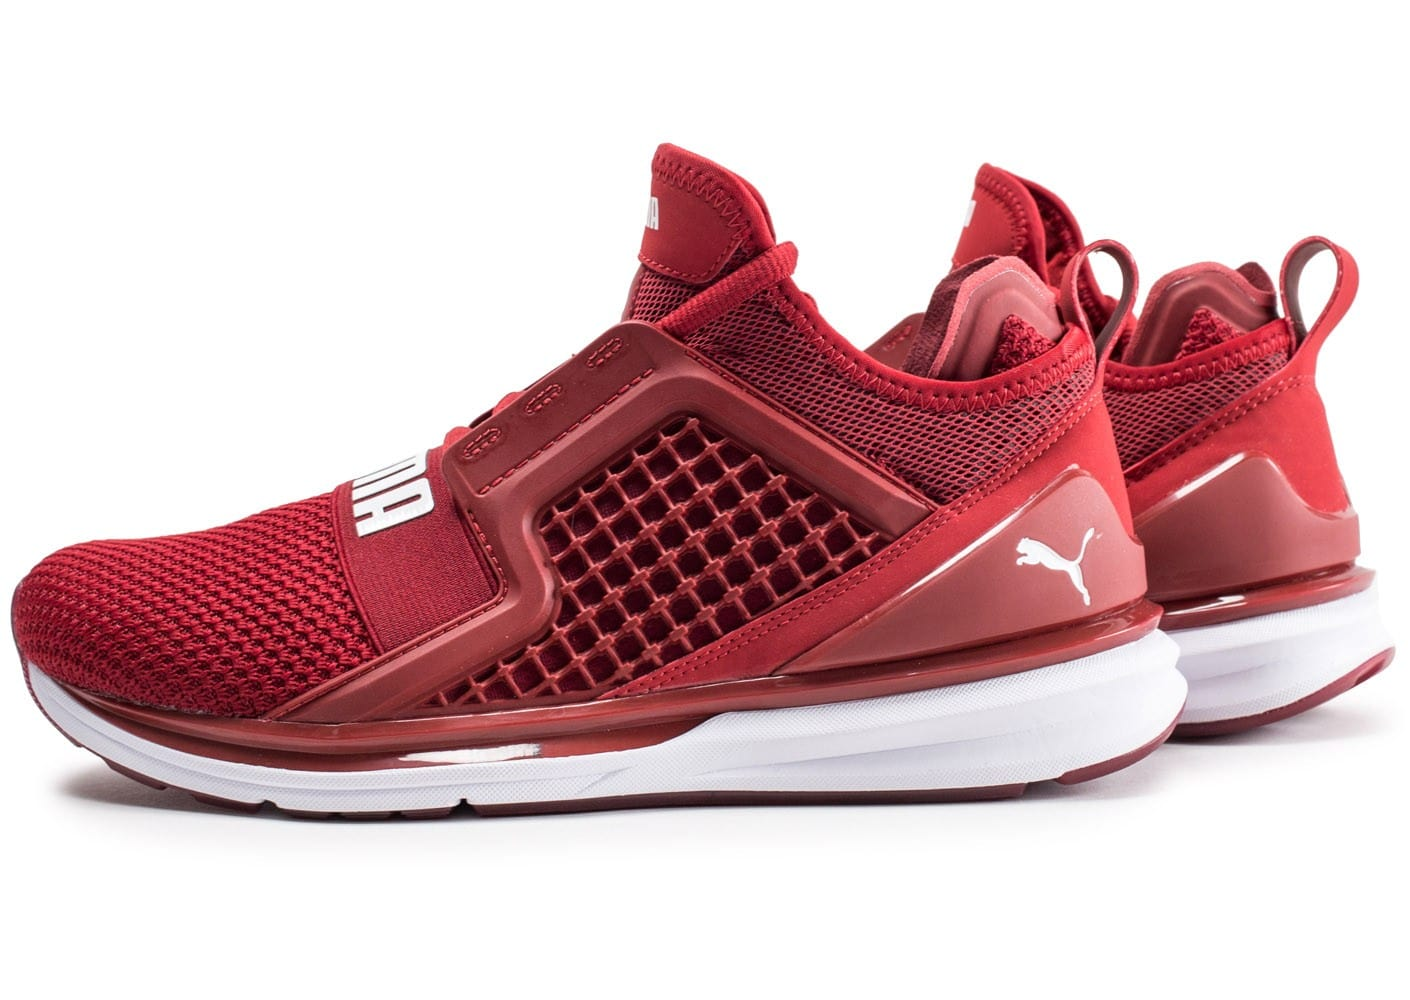 Chausport Chaussures Puma Limitless Ignite Rouge 6q6rx Homme Baskets hostQdCxBr